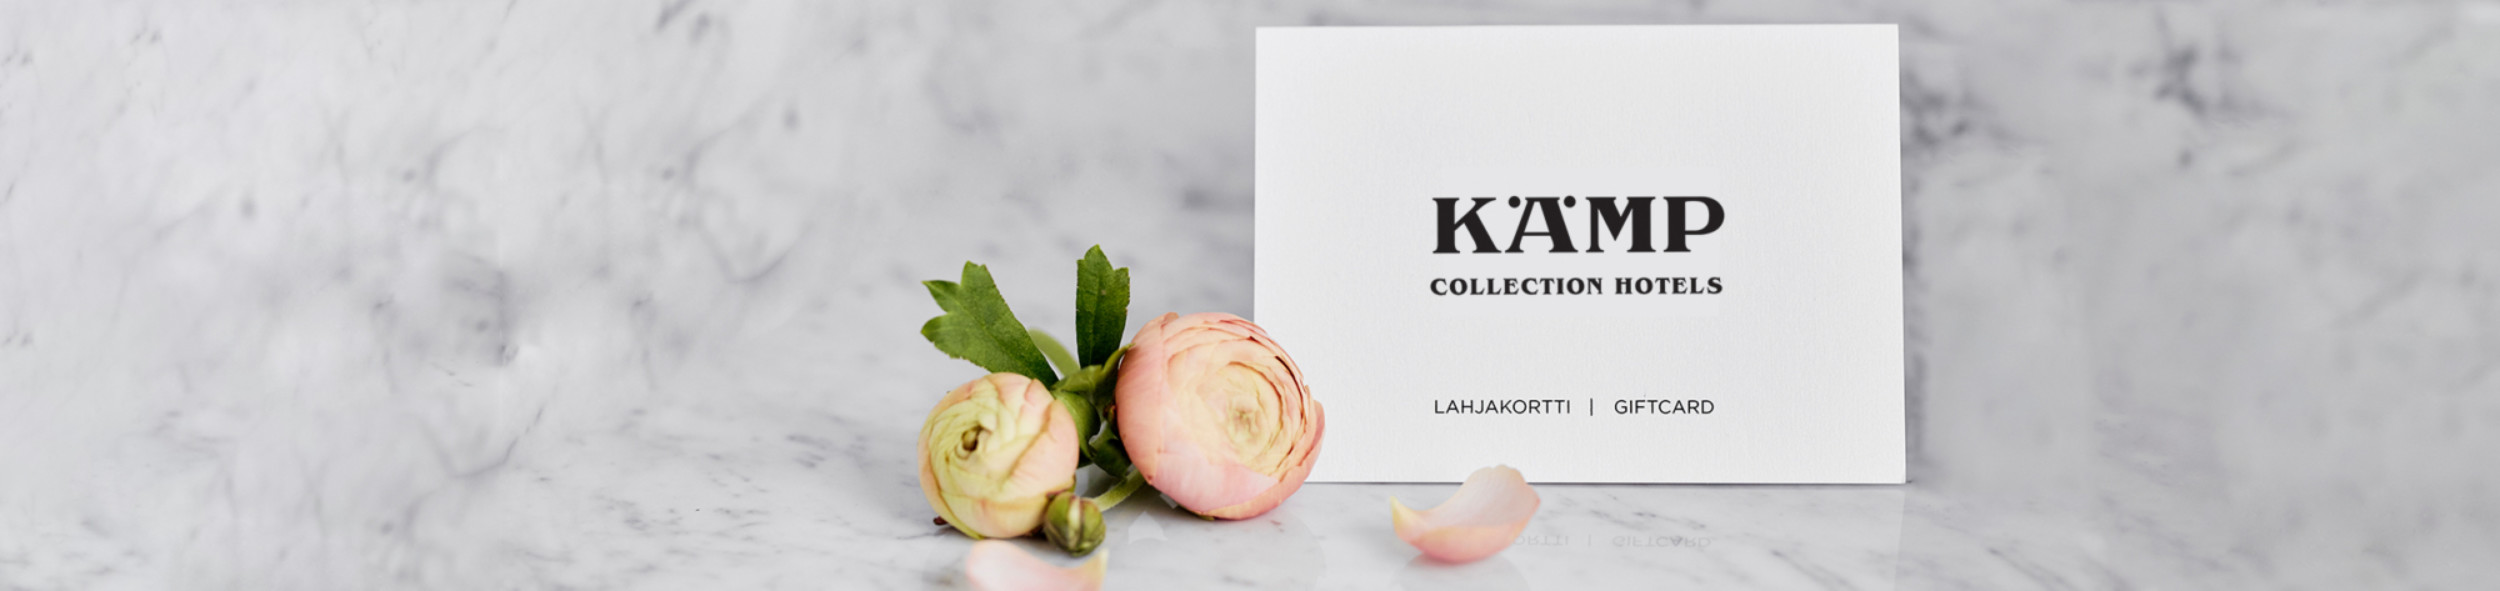 Kämp Collection Hotels Giftcard